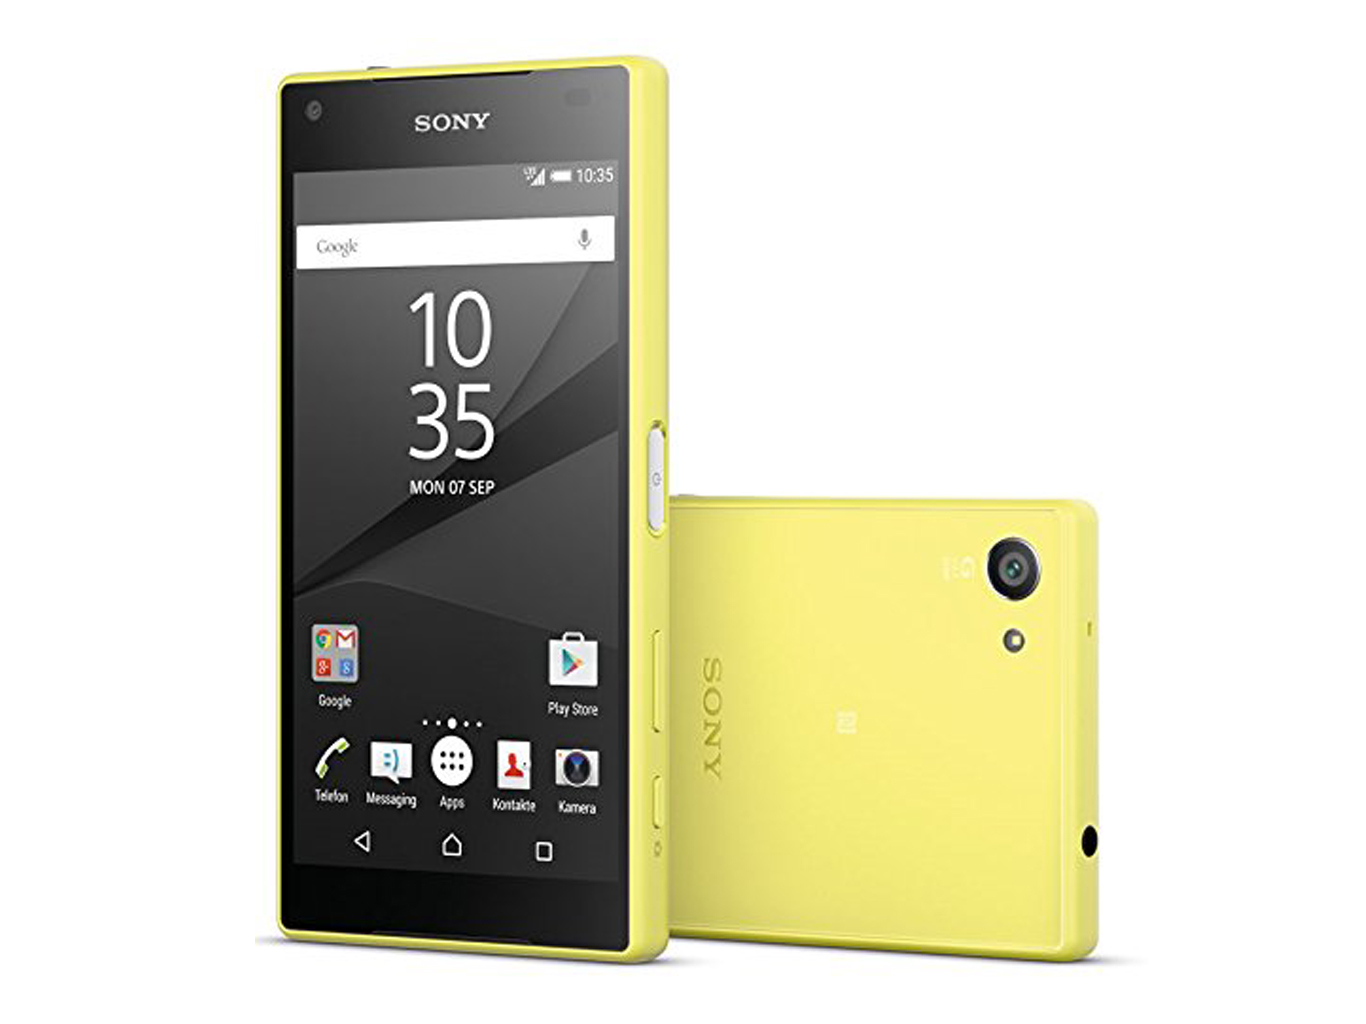 Sony Xperia Z5 Compact Smartphone Review